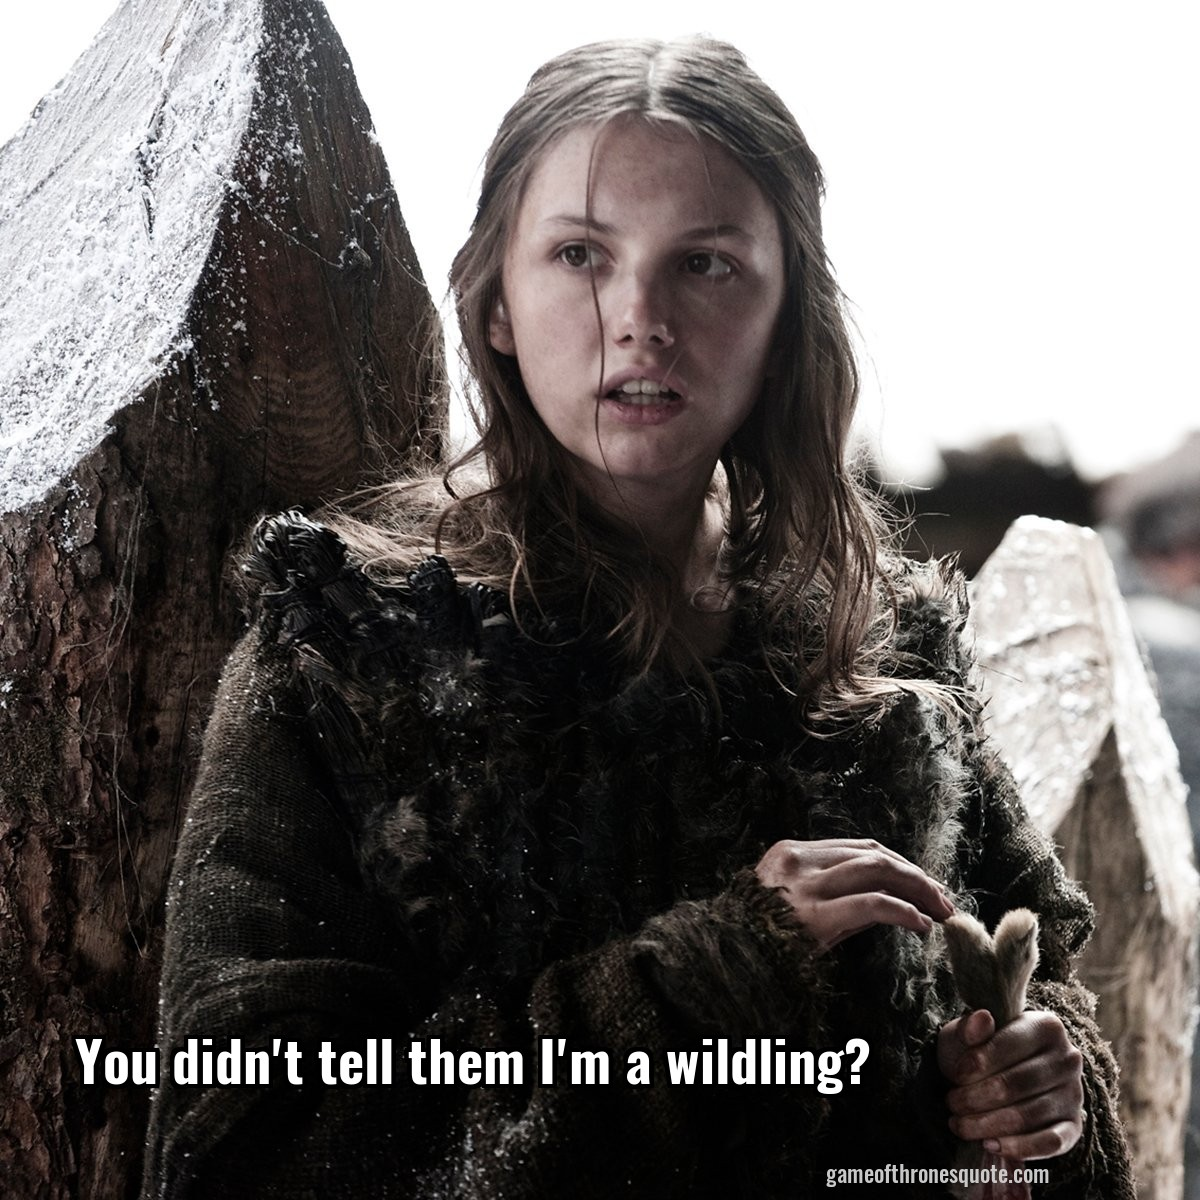 You didn't tell them I'm a wildling?